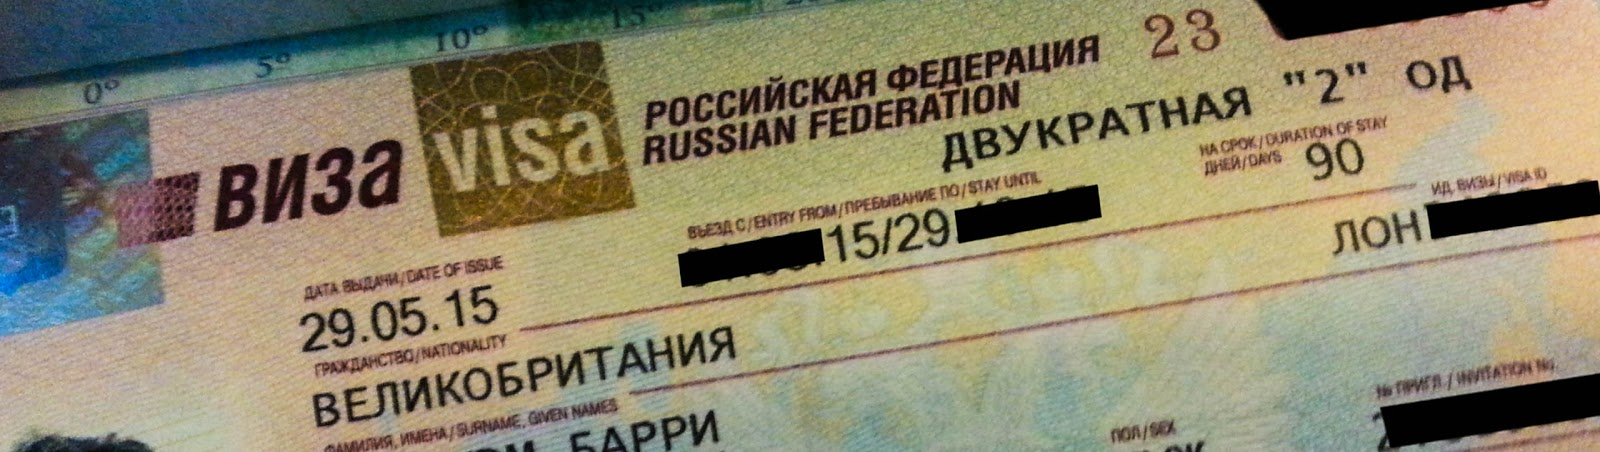 Team gobiyond mongol rally 2015 visas russia this is our first visa application that has required a separate letter of invitation loi application this is a document that invites you to russia spiritdancerdesigns Image collections